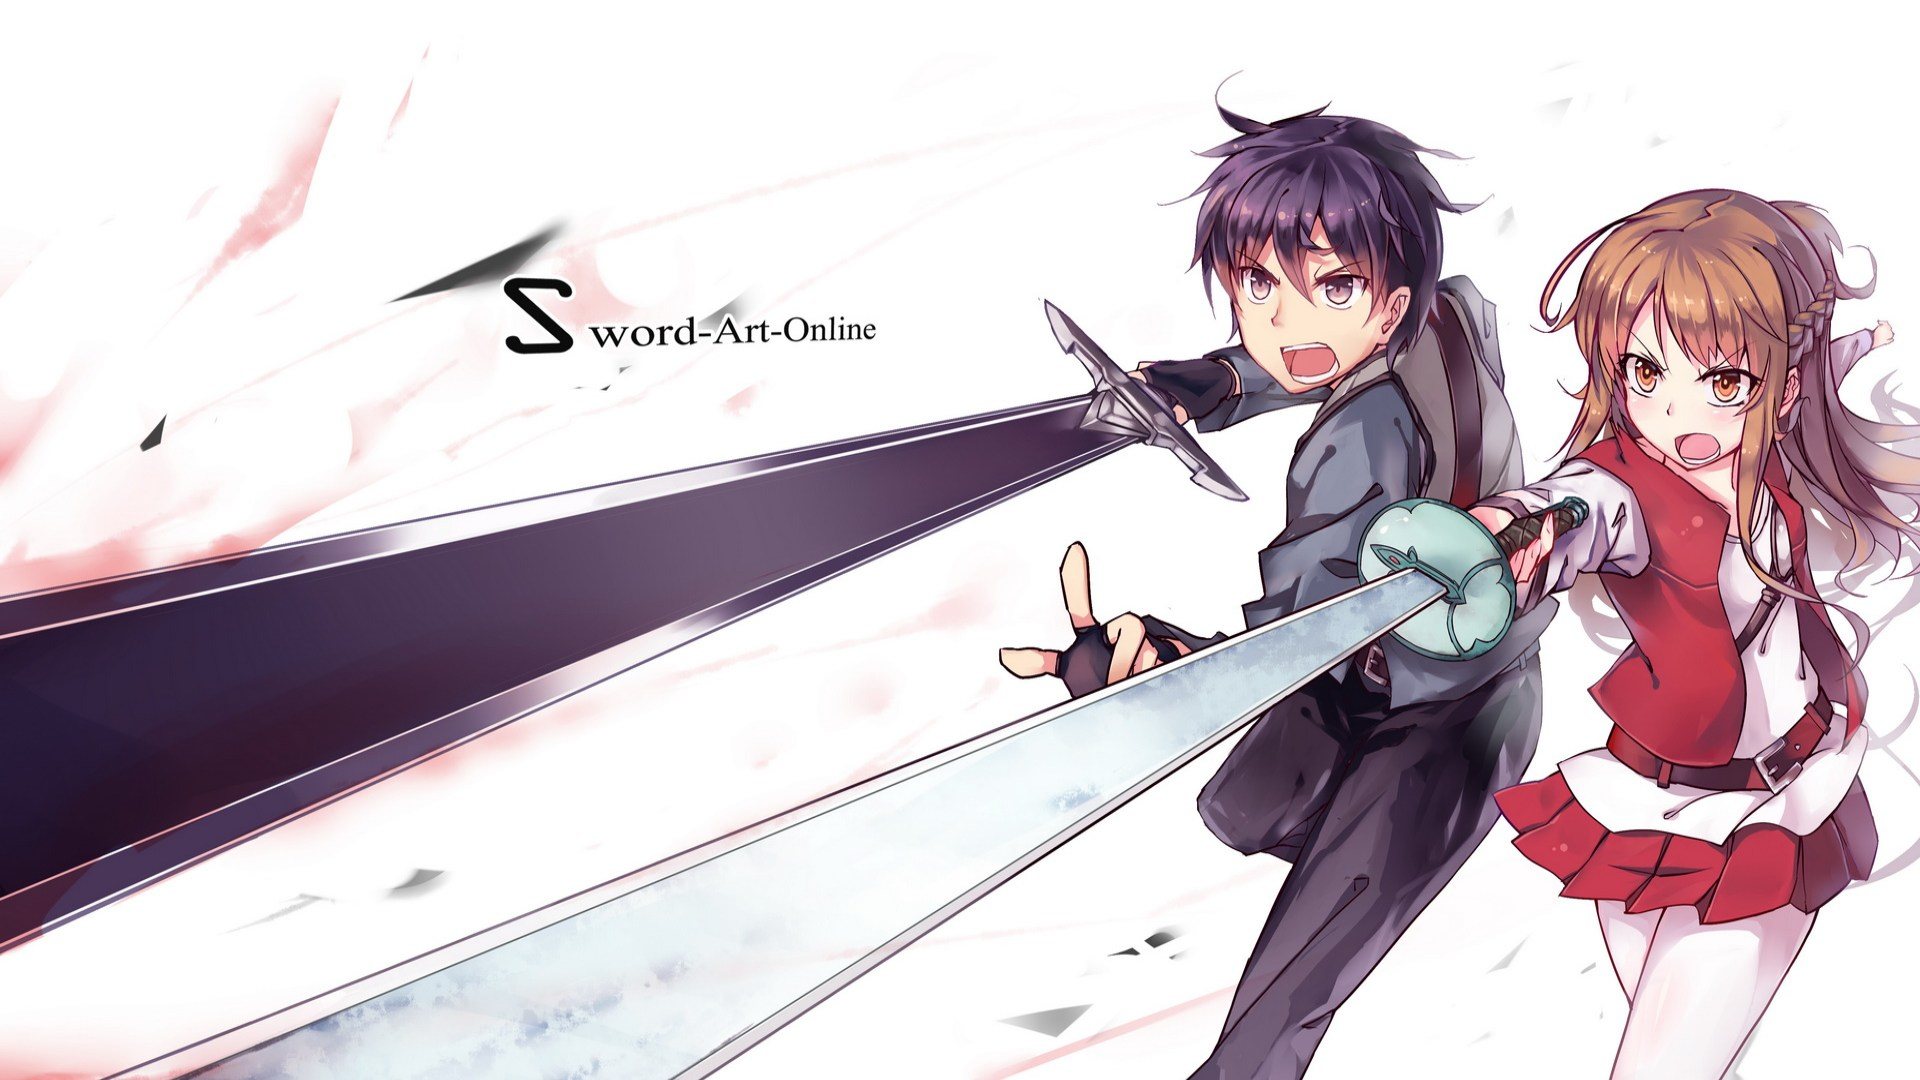 English Dub Voices For Sword Art Online